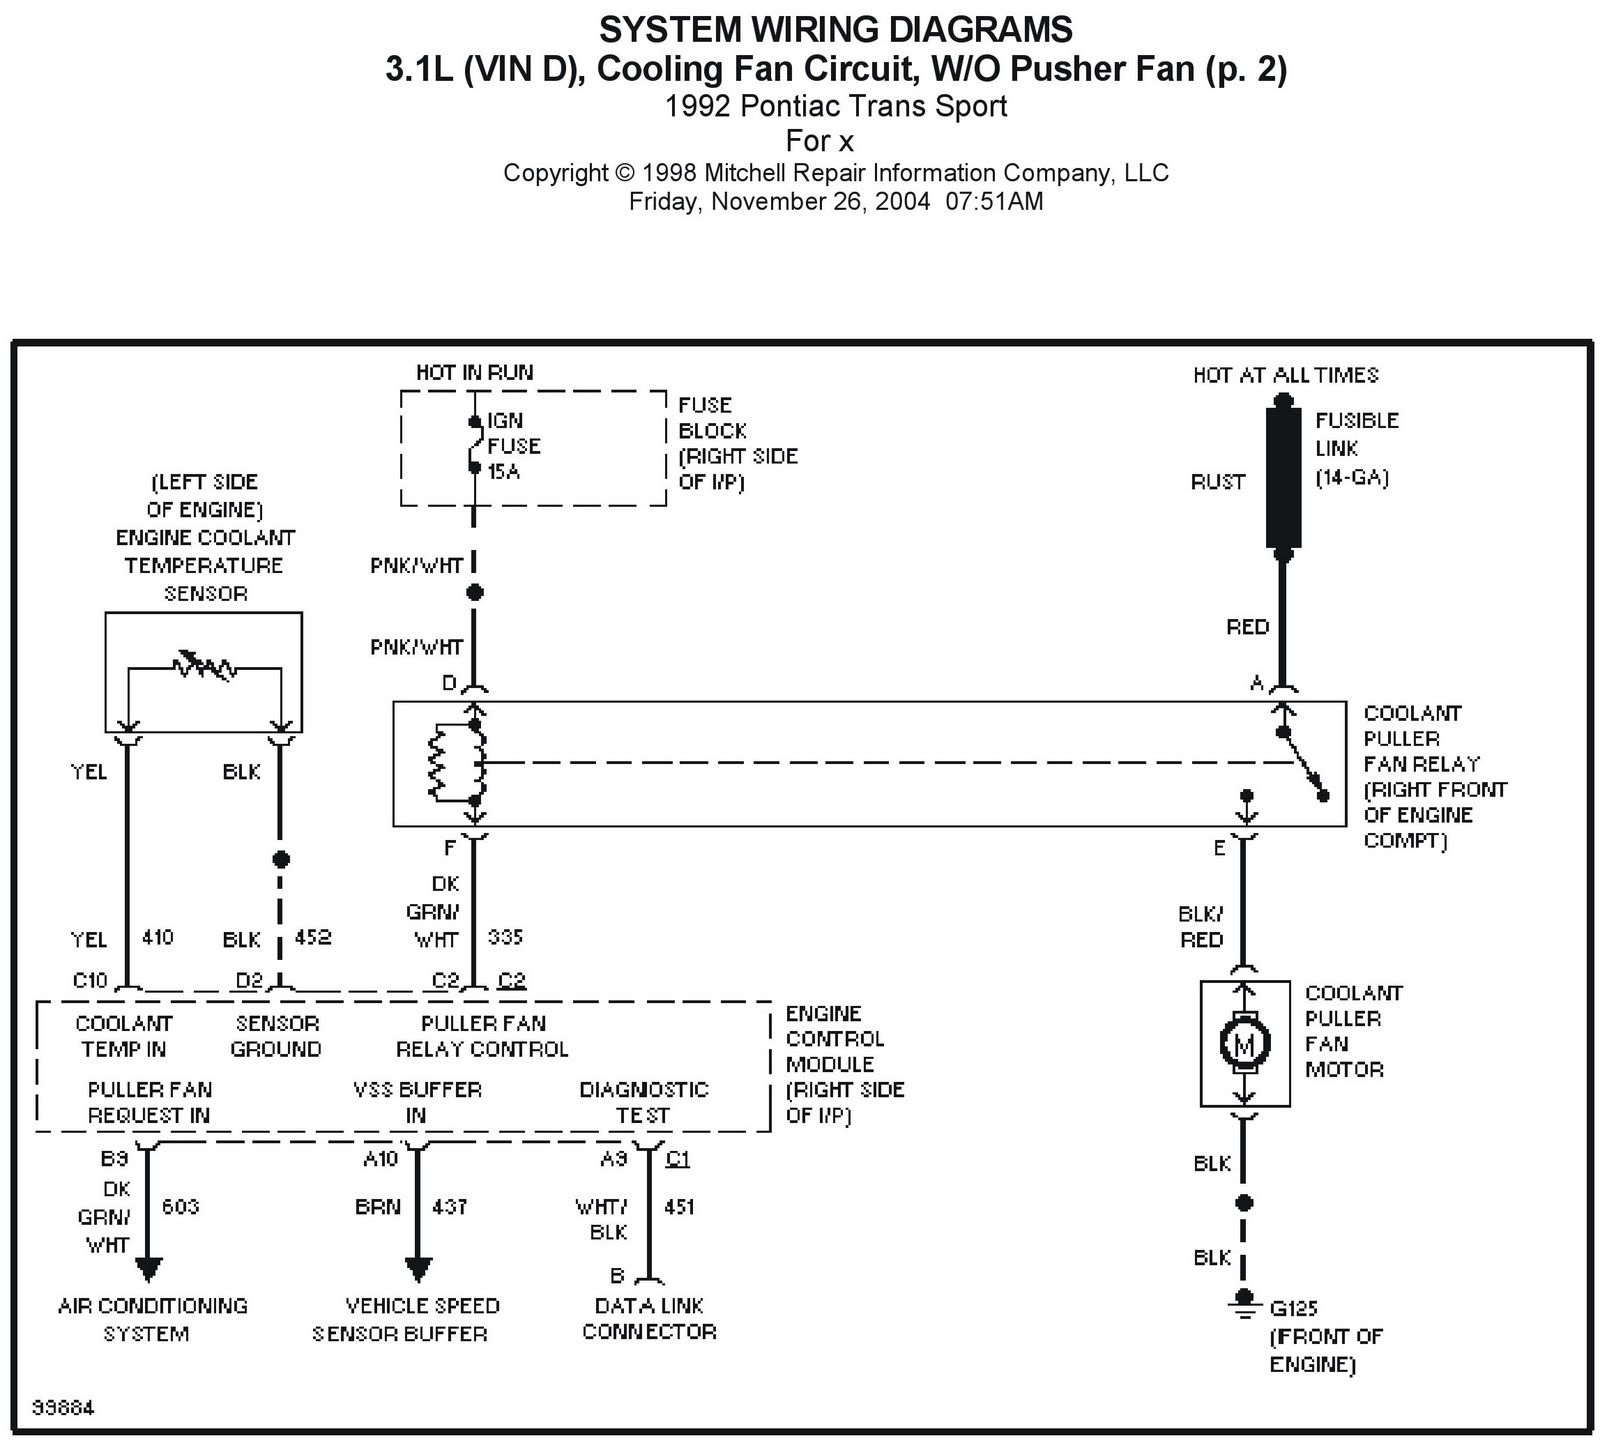 wiring diagrams galleries1992 pontiac trans sport cooling fan circuits system wiring diagrams part 2 [ 1600 x 1443 Pixel ]